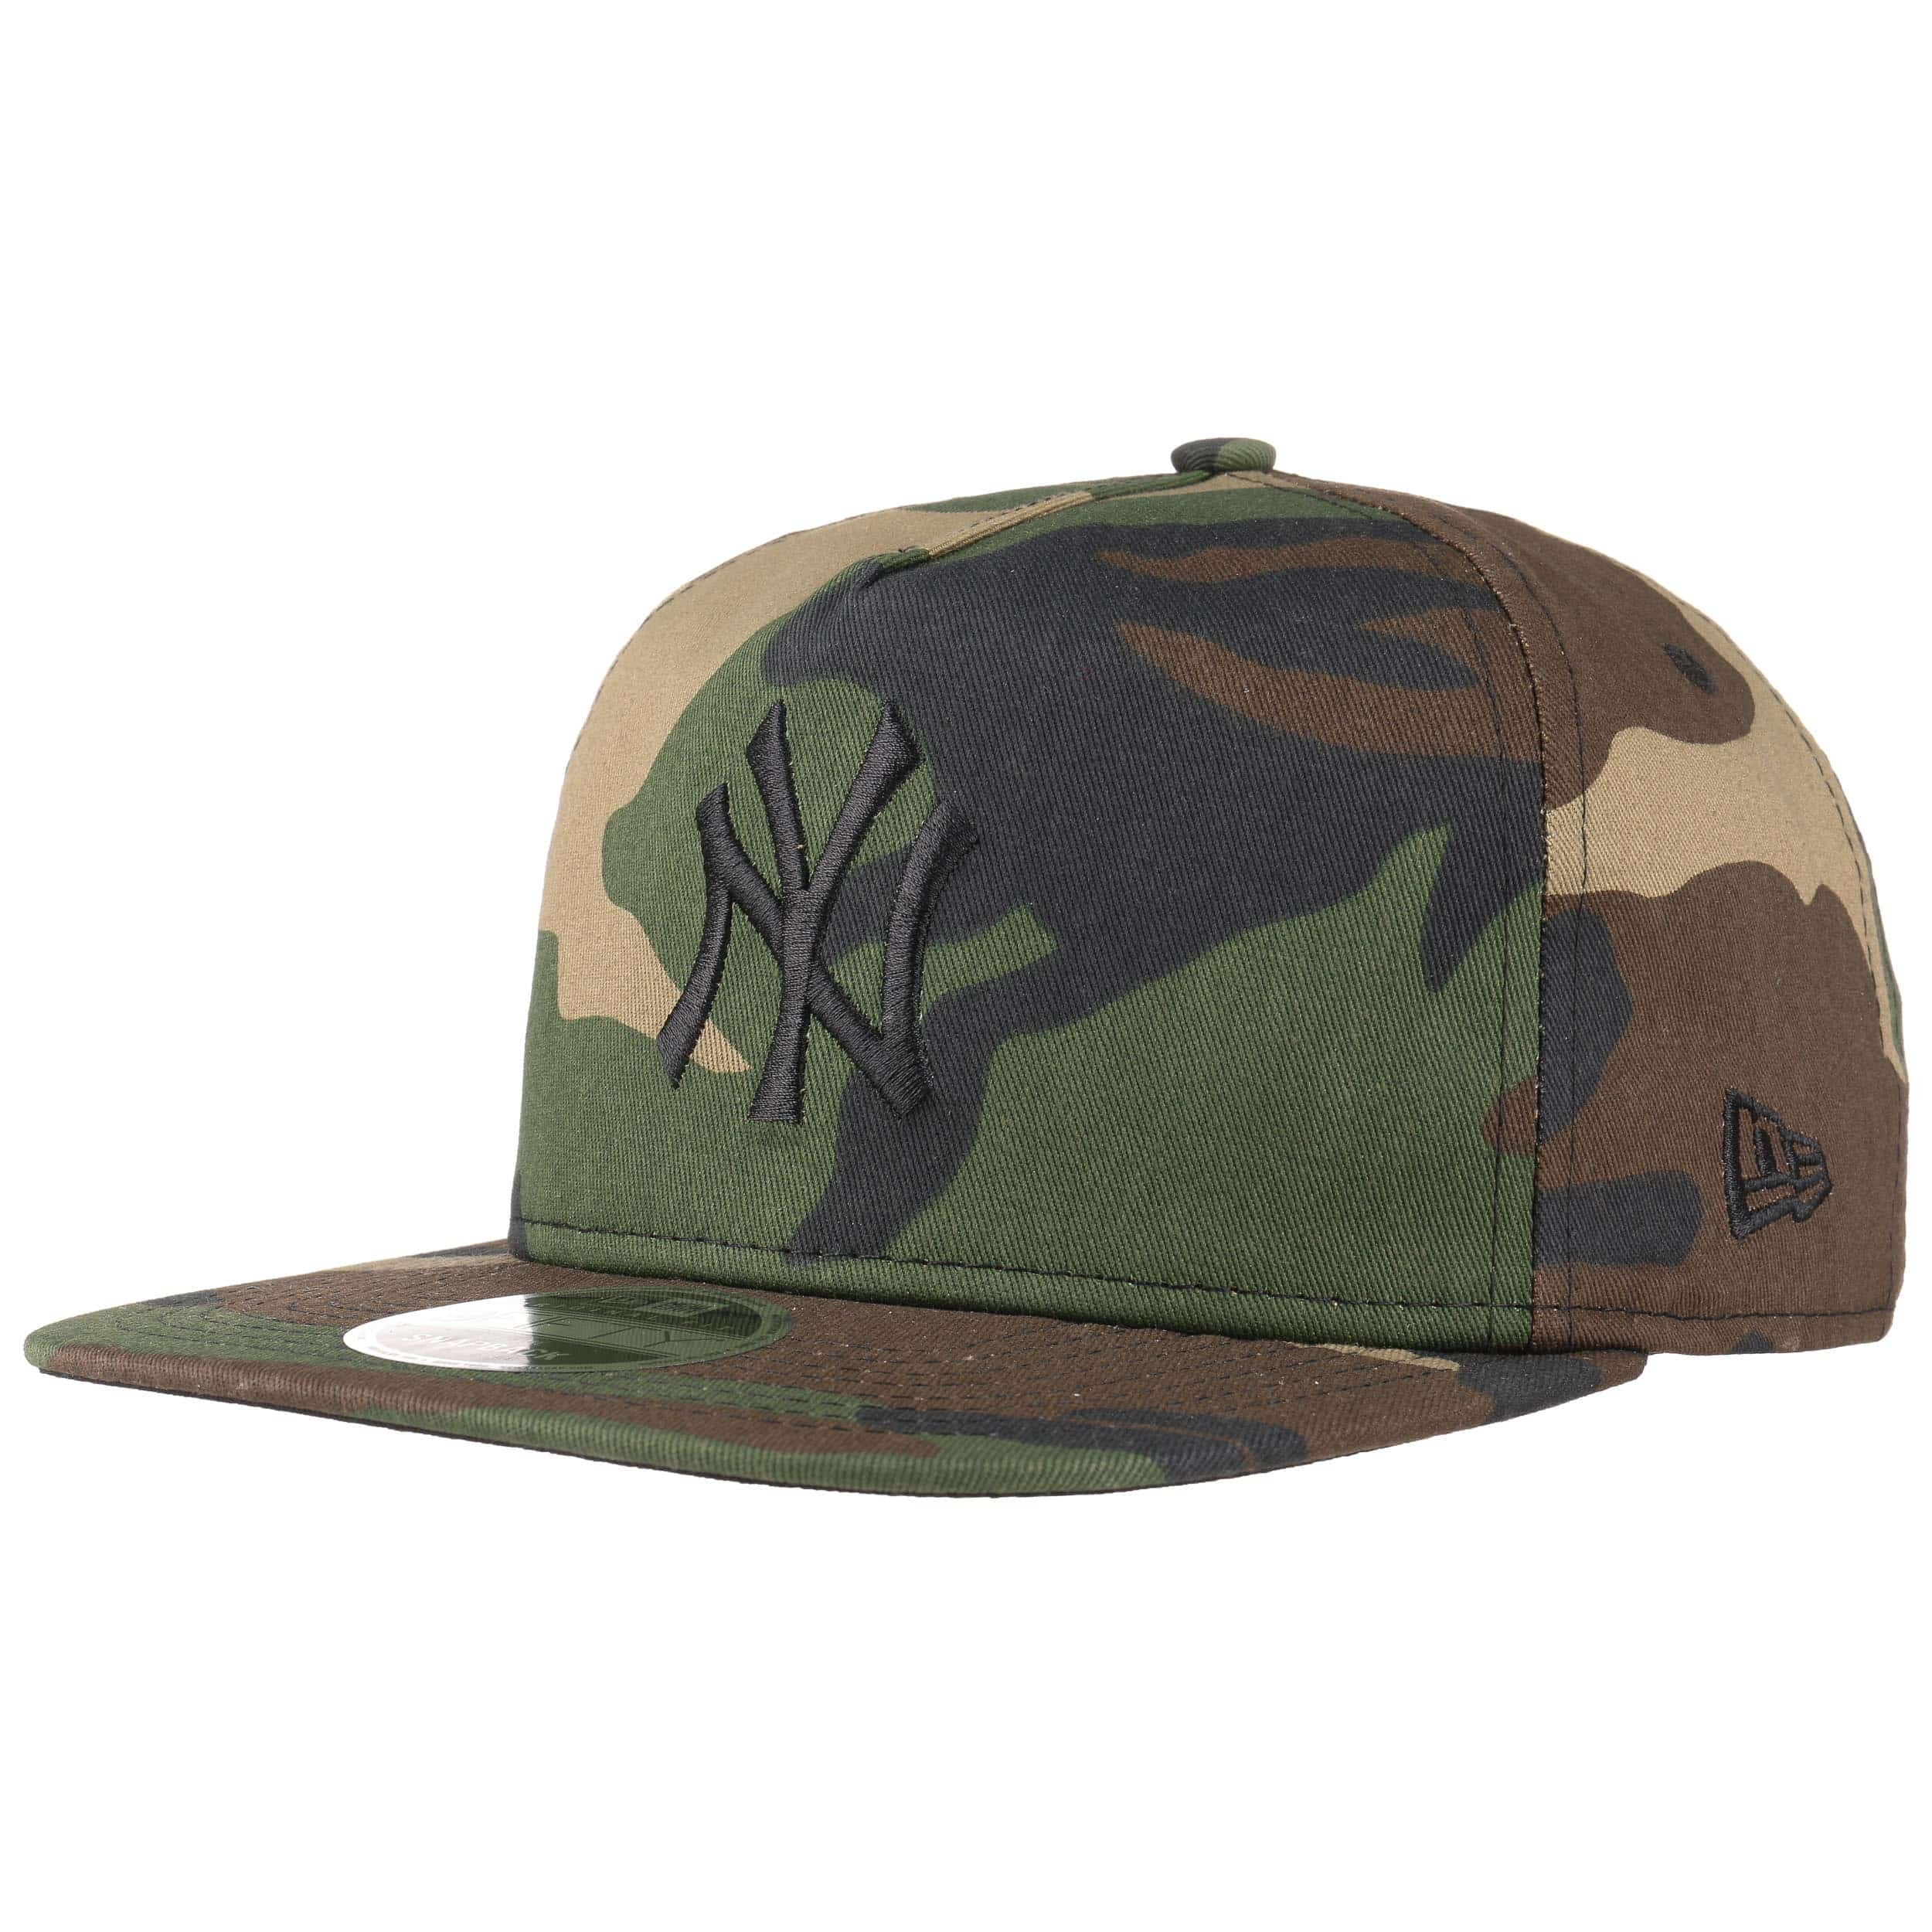 9fifty unstructured ny camo cap by new era eur 34 95. Black Bedroom Furniture Sets. Home Design Ideas